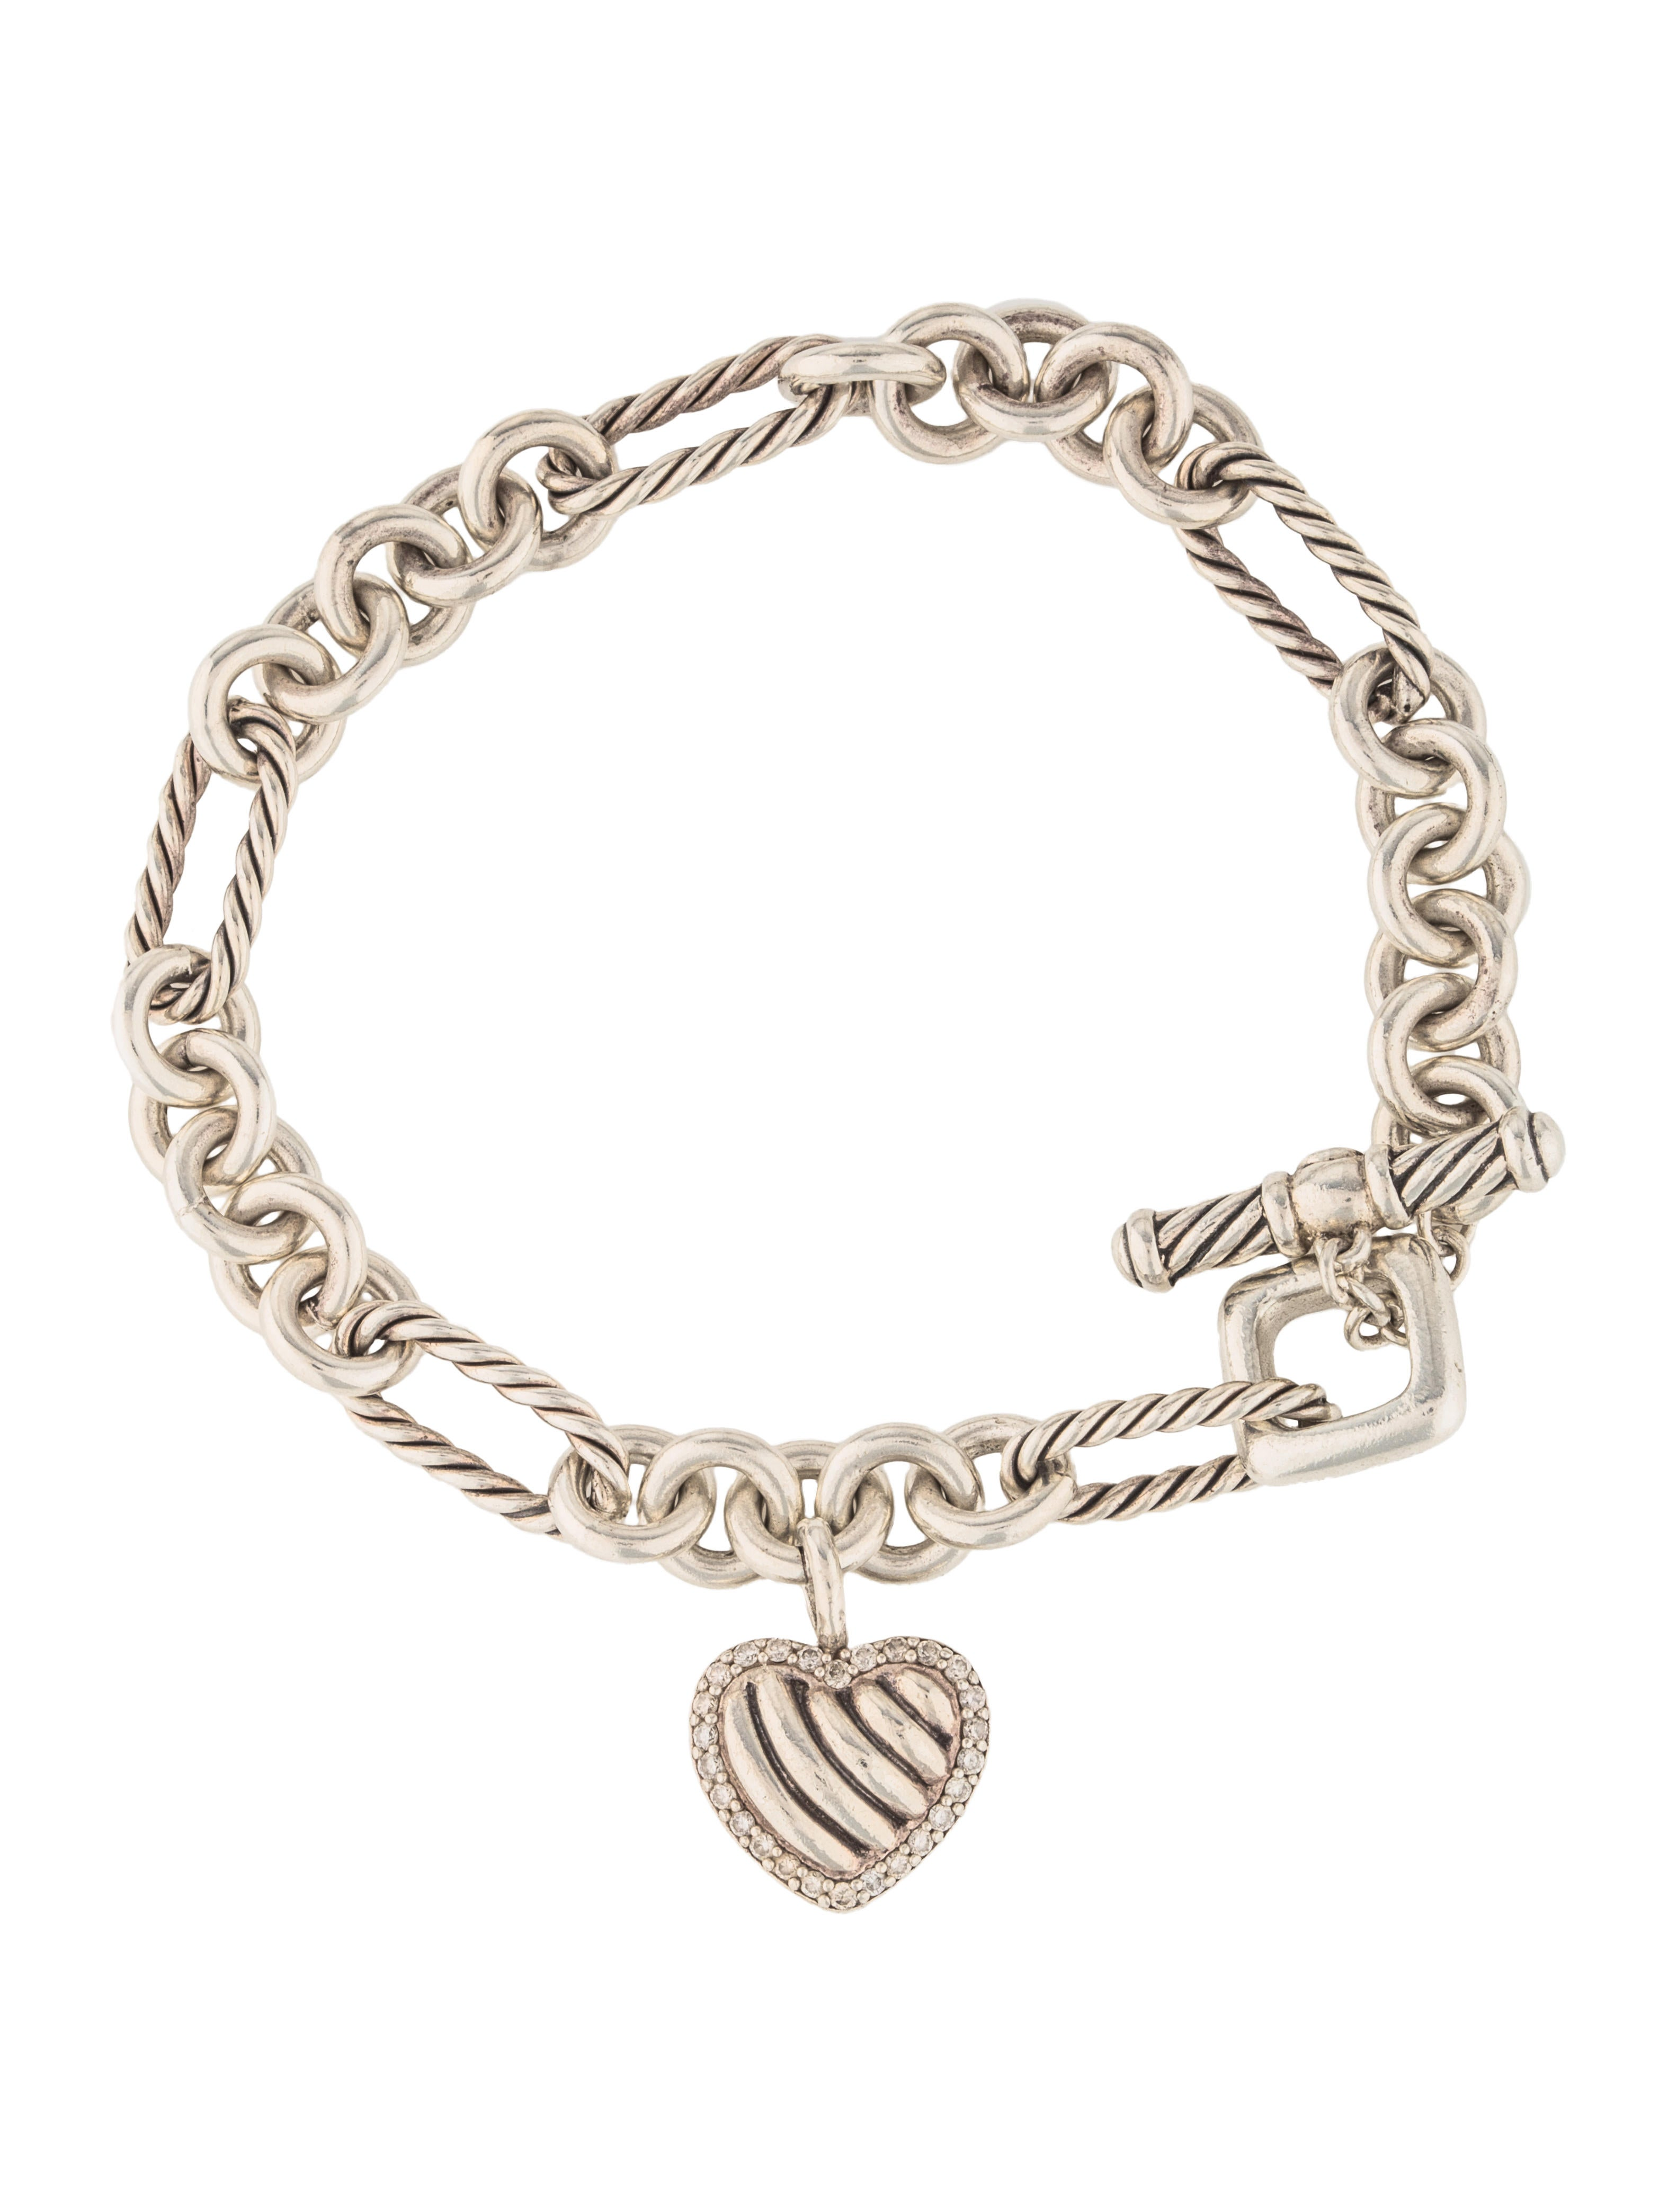 David yurman diamond cable heart toggle charm bracelet for David yurman inspired bracelet cable